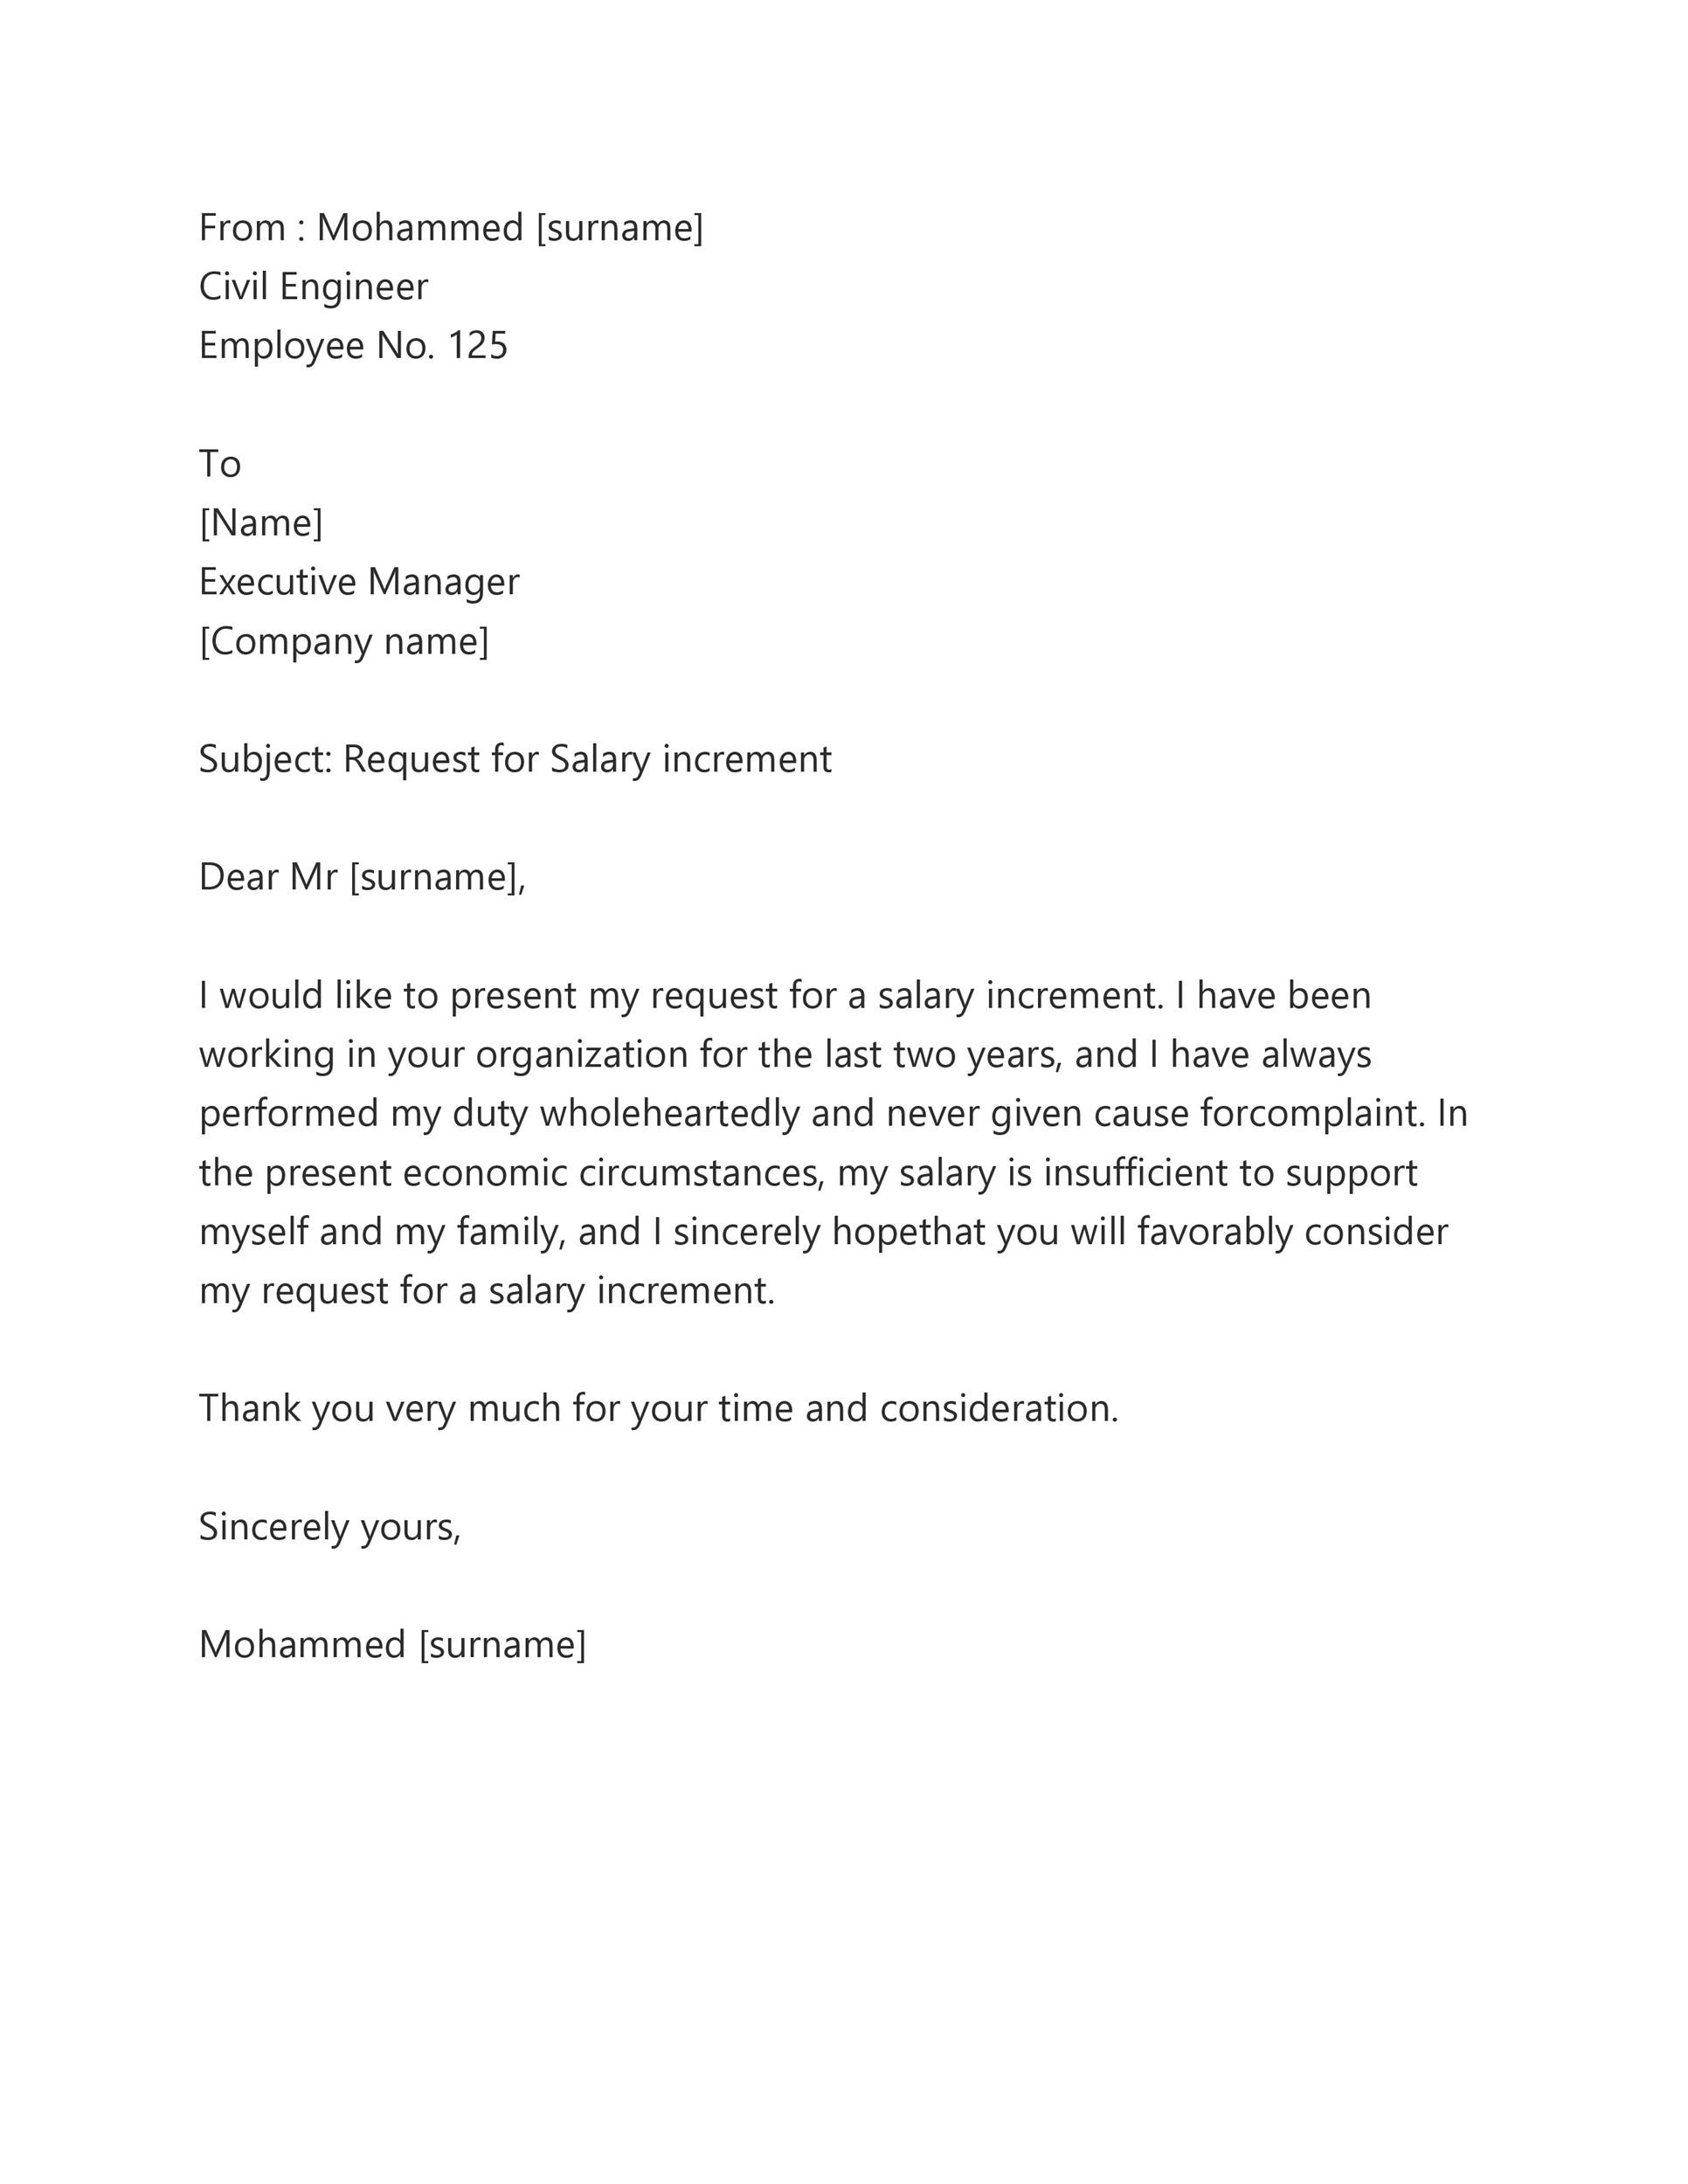 Salary Increment Letter To Employee From The Employer : Salary